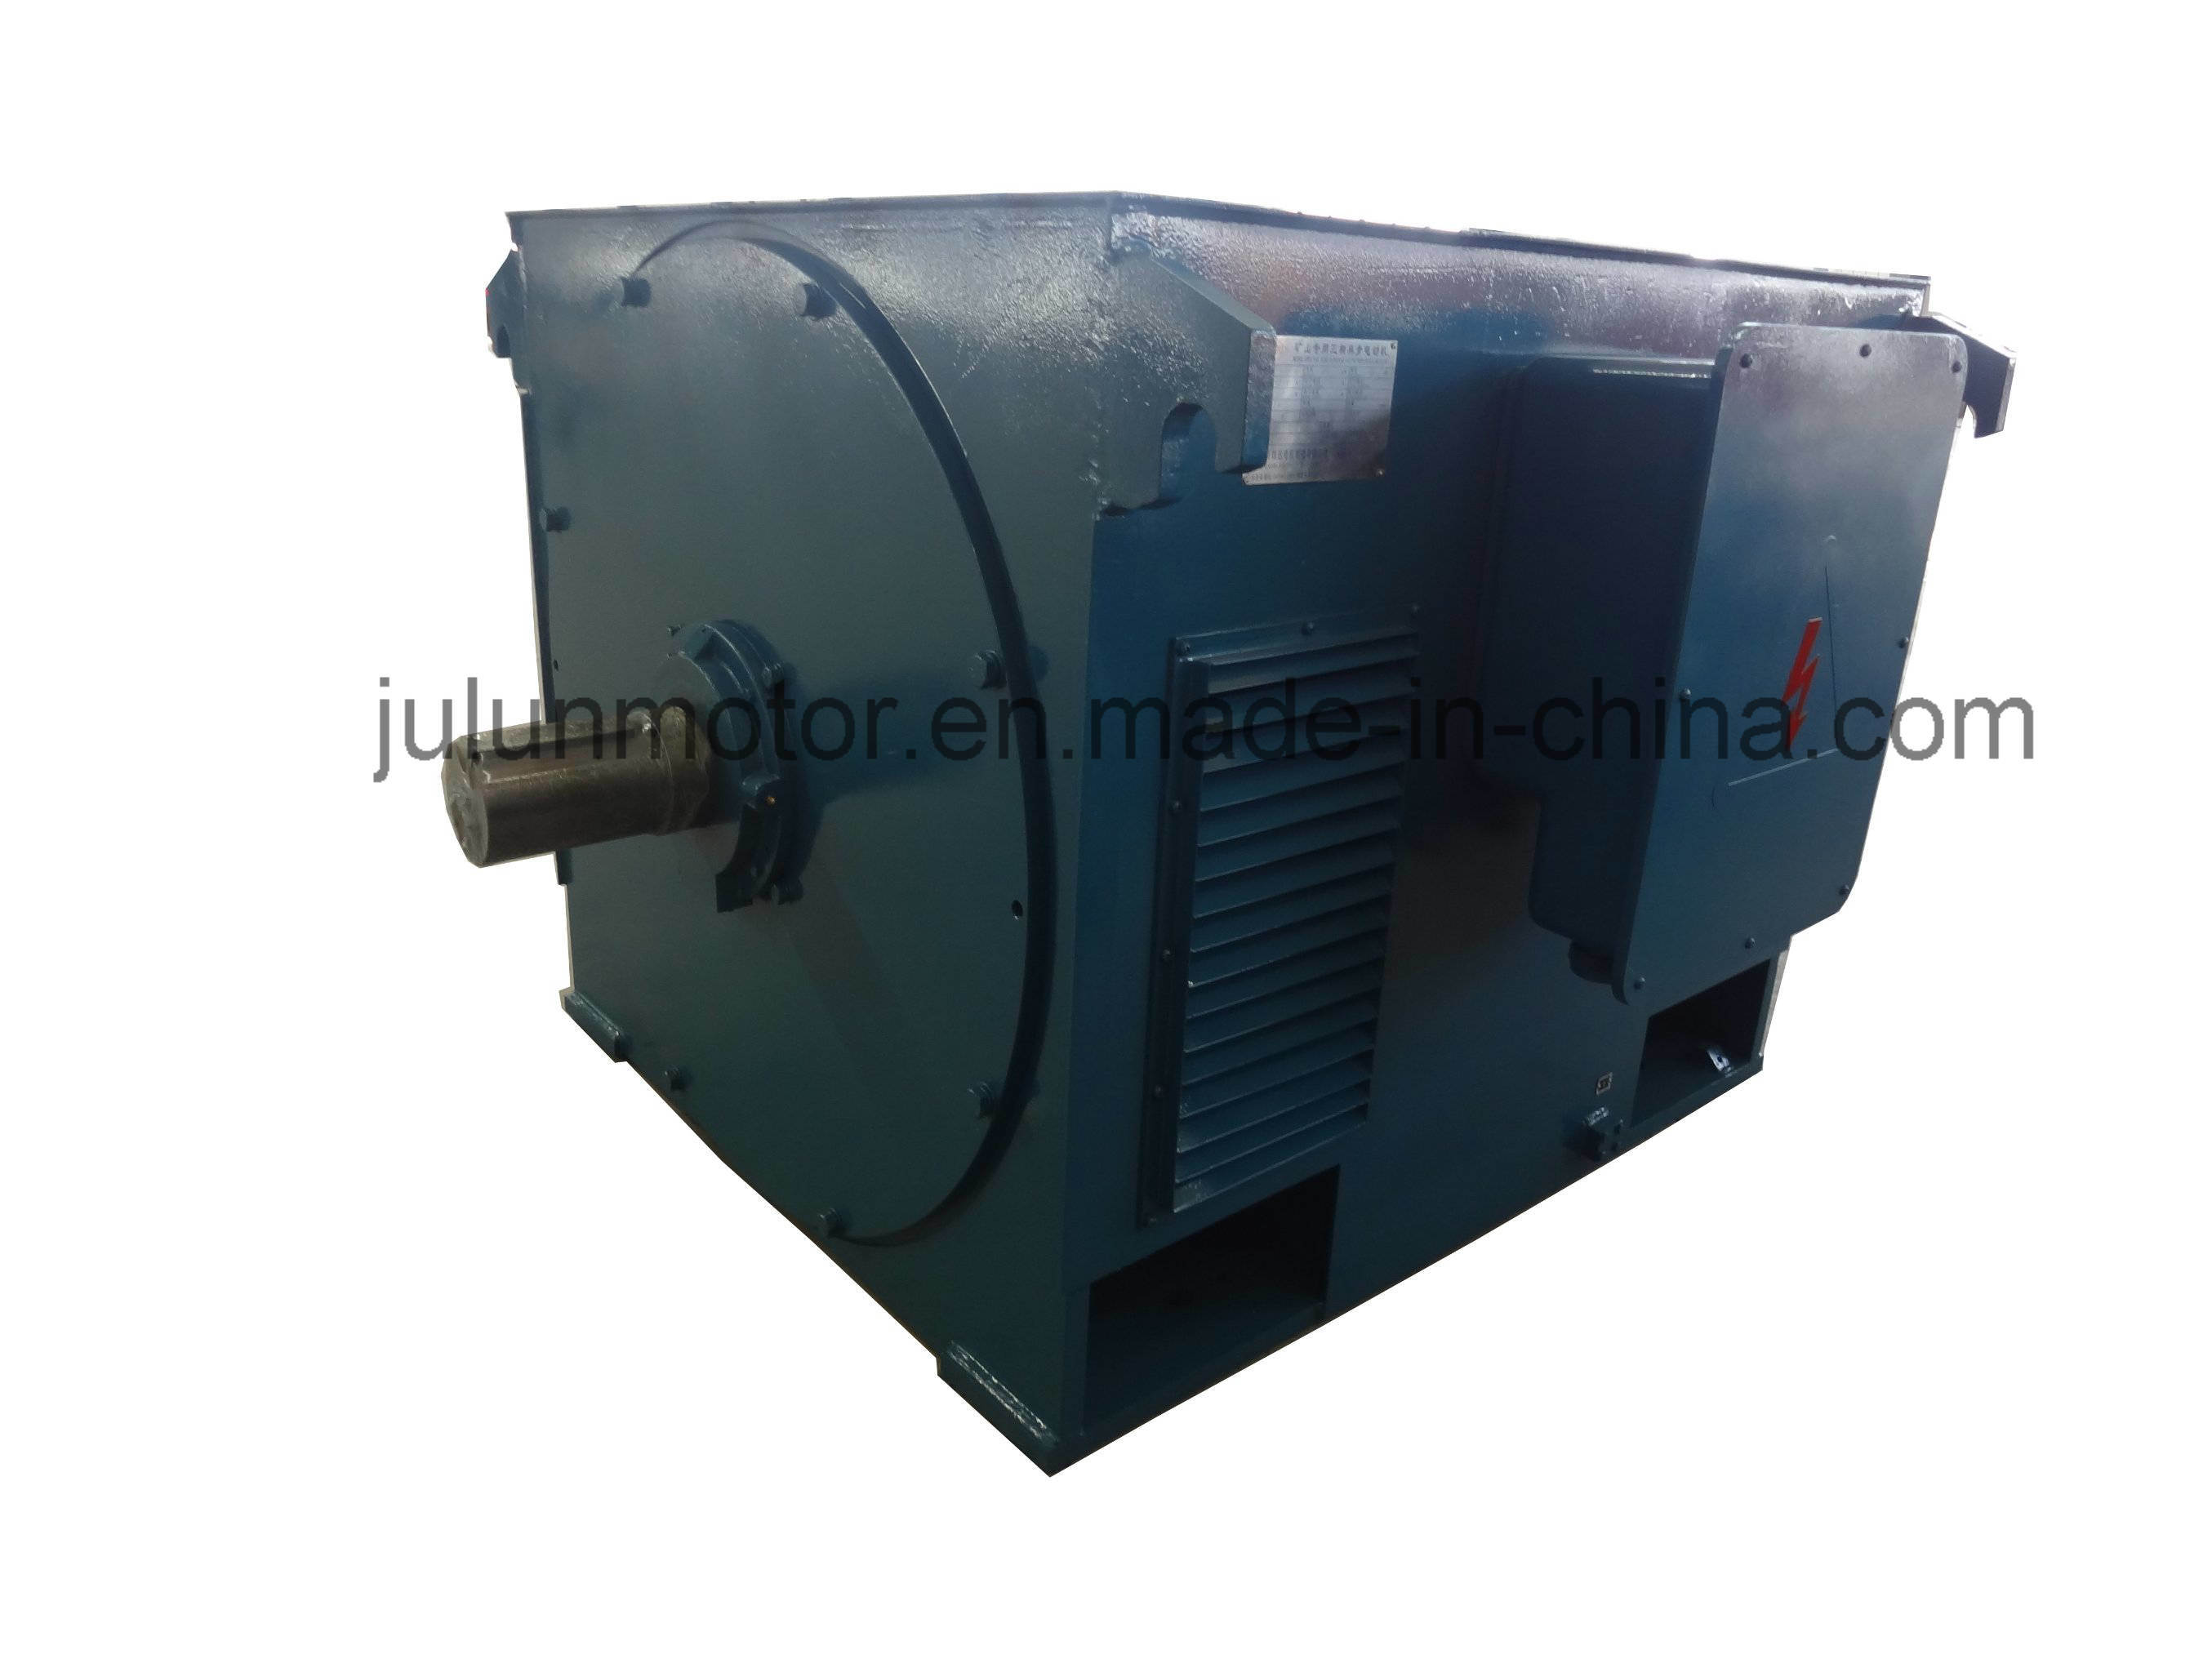 3-Phase Asynchronous Motor Series Ysq Special for Mines